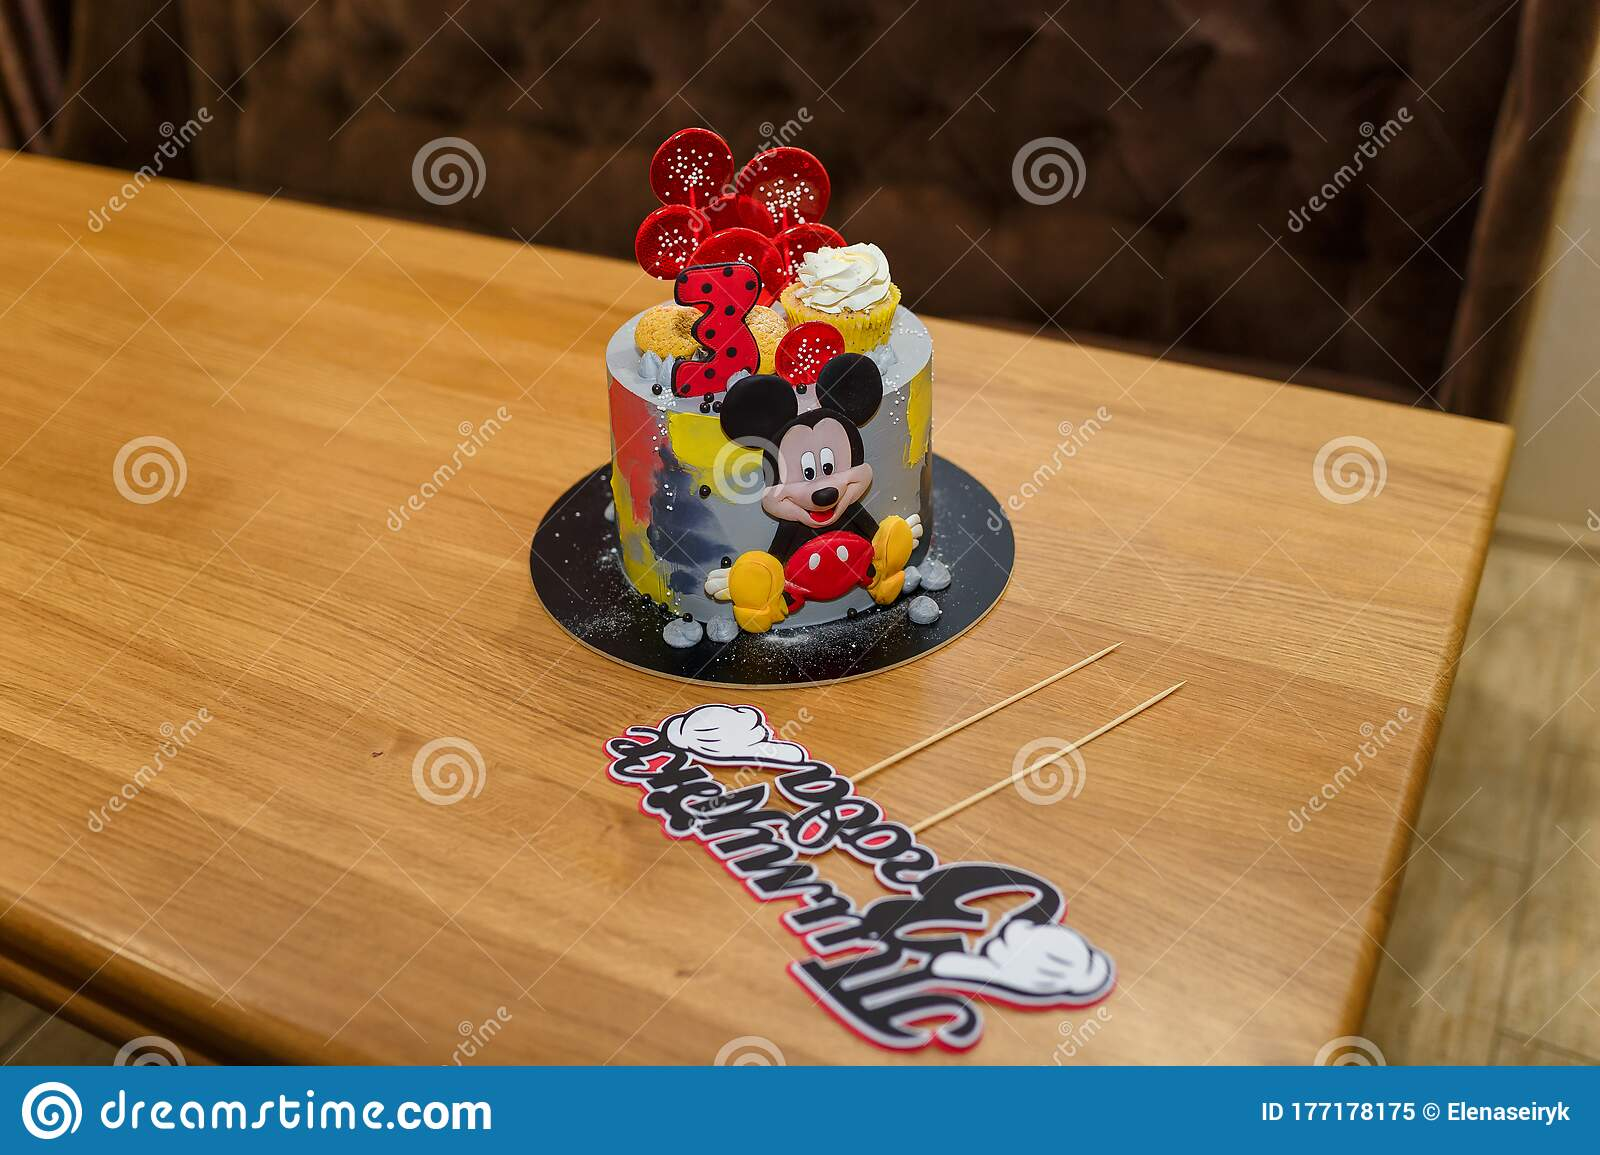 Birthday Cake With Mickey Mouse Cartoon Character Thematic Walt Disney Event For Child Inscription In Russian Timur Is 3 Years Editorial Image Image Of November Colorful 177178175